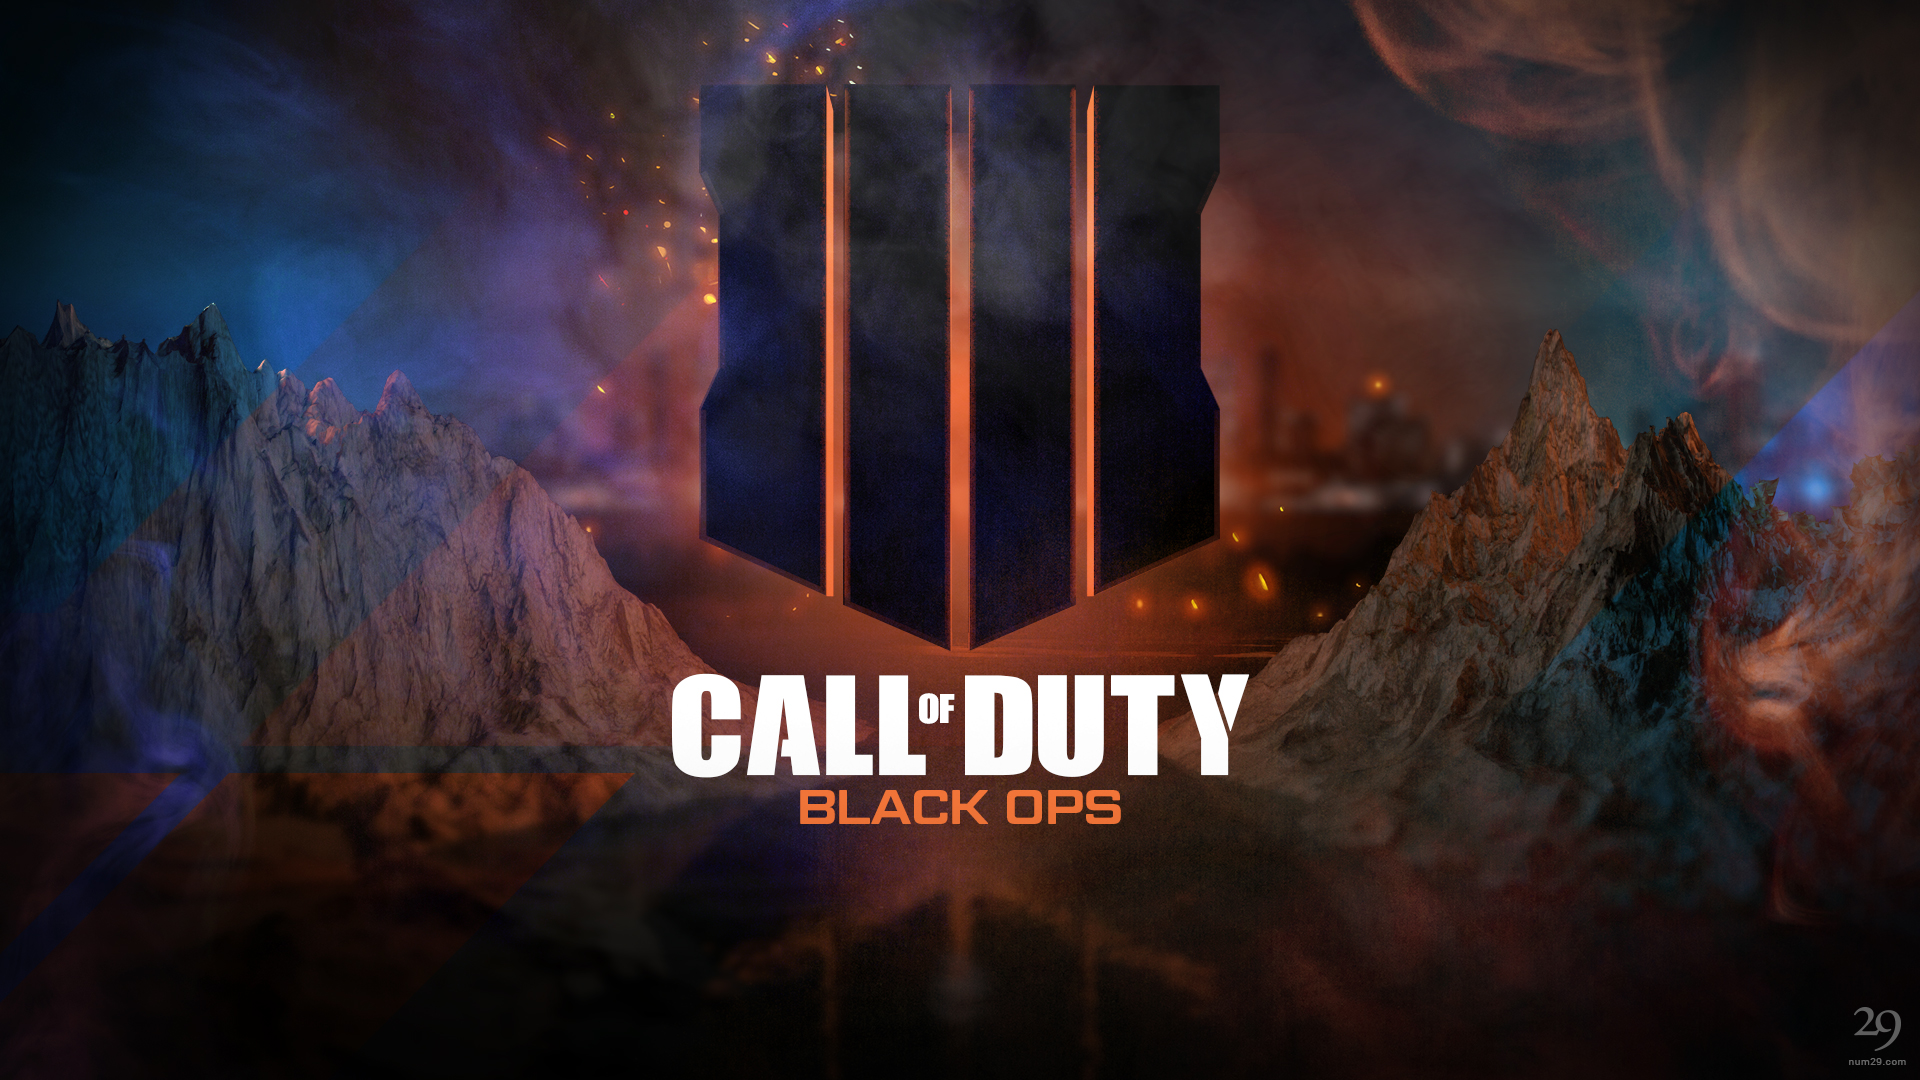 Call Of Duty Black Ops 4 Free Wallpaper Number29 Llc